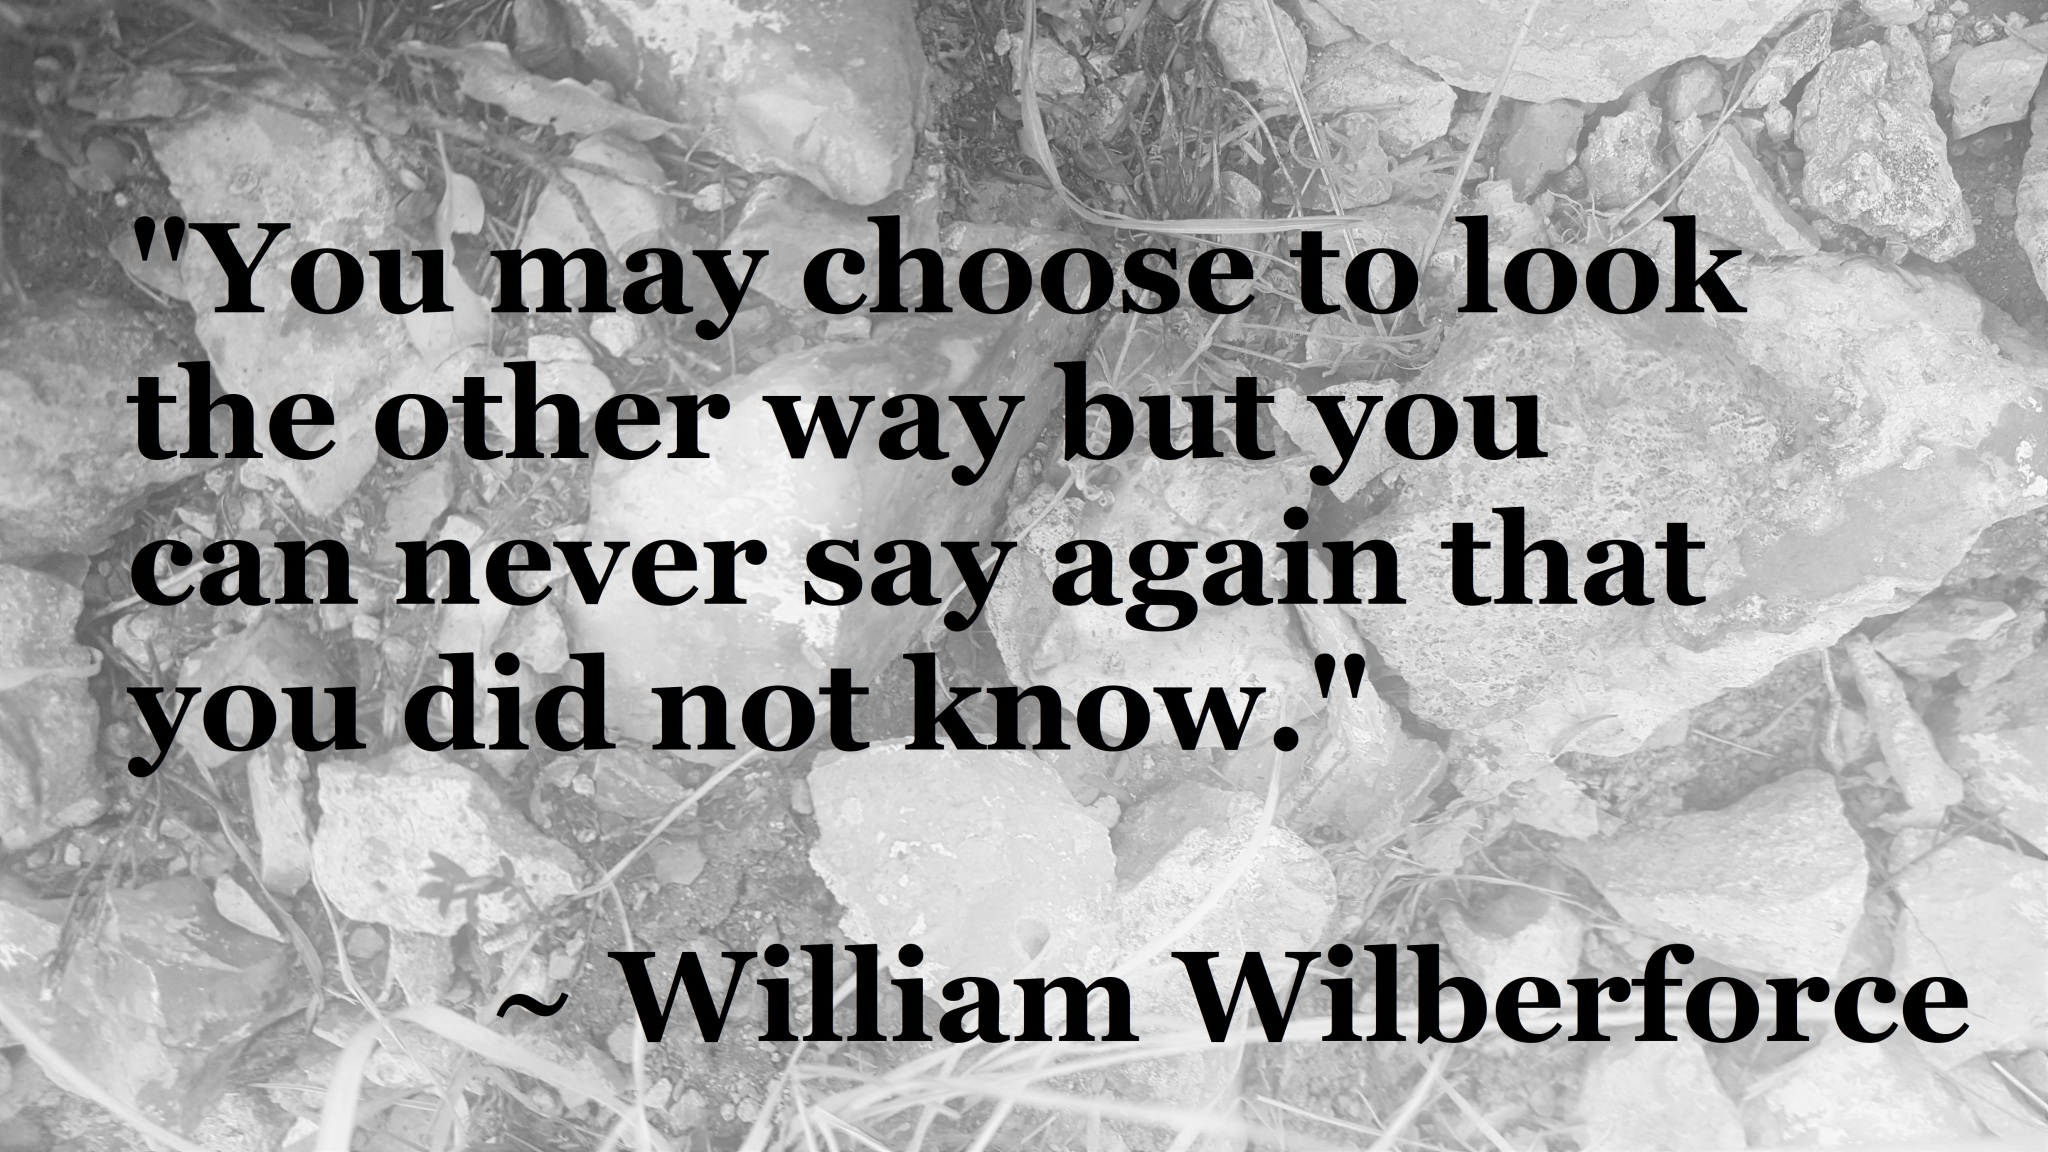 William Wilberforce - looking the other way